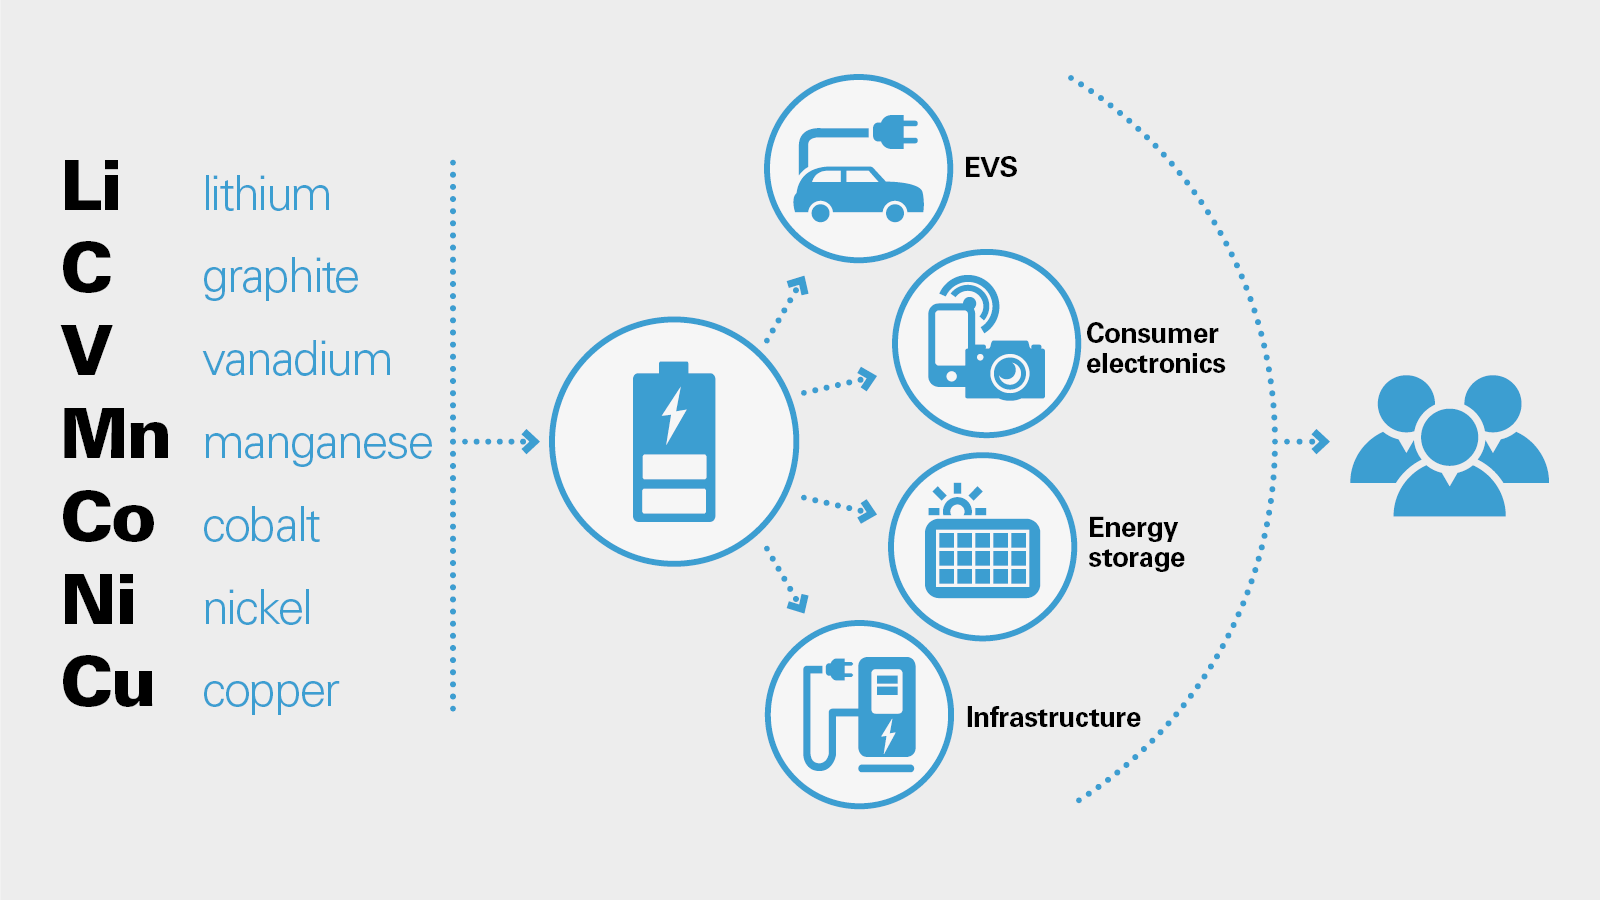 infographic PNG shows lithium, graphite, vanadium, manganese, cobalt, nickel and copper in the battery supply chain of electric cars, consumer electronics, energy storage and infrastructure